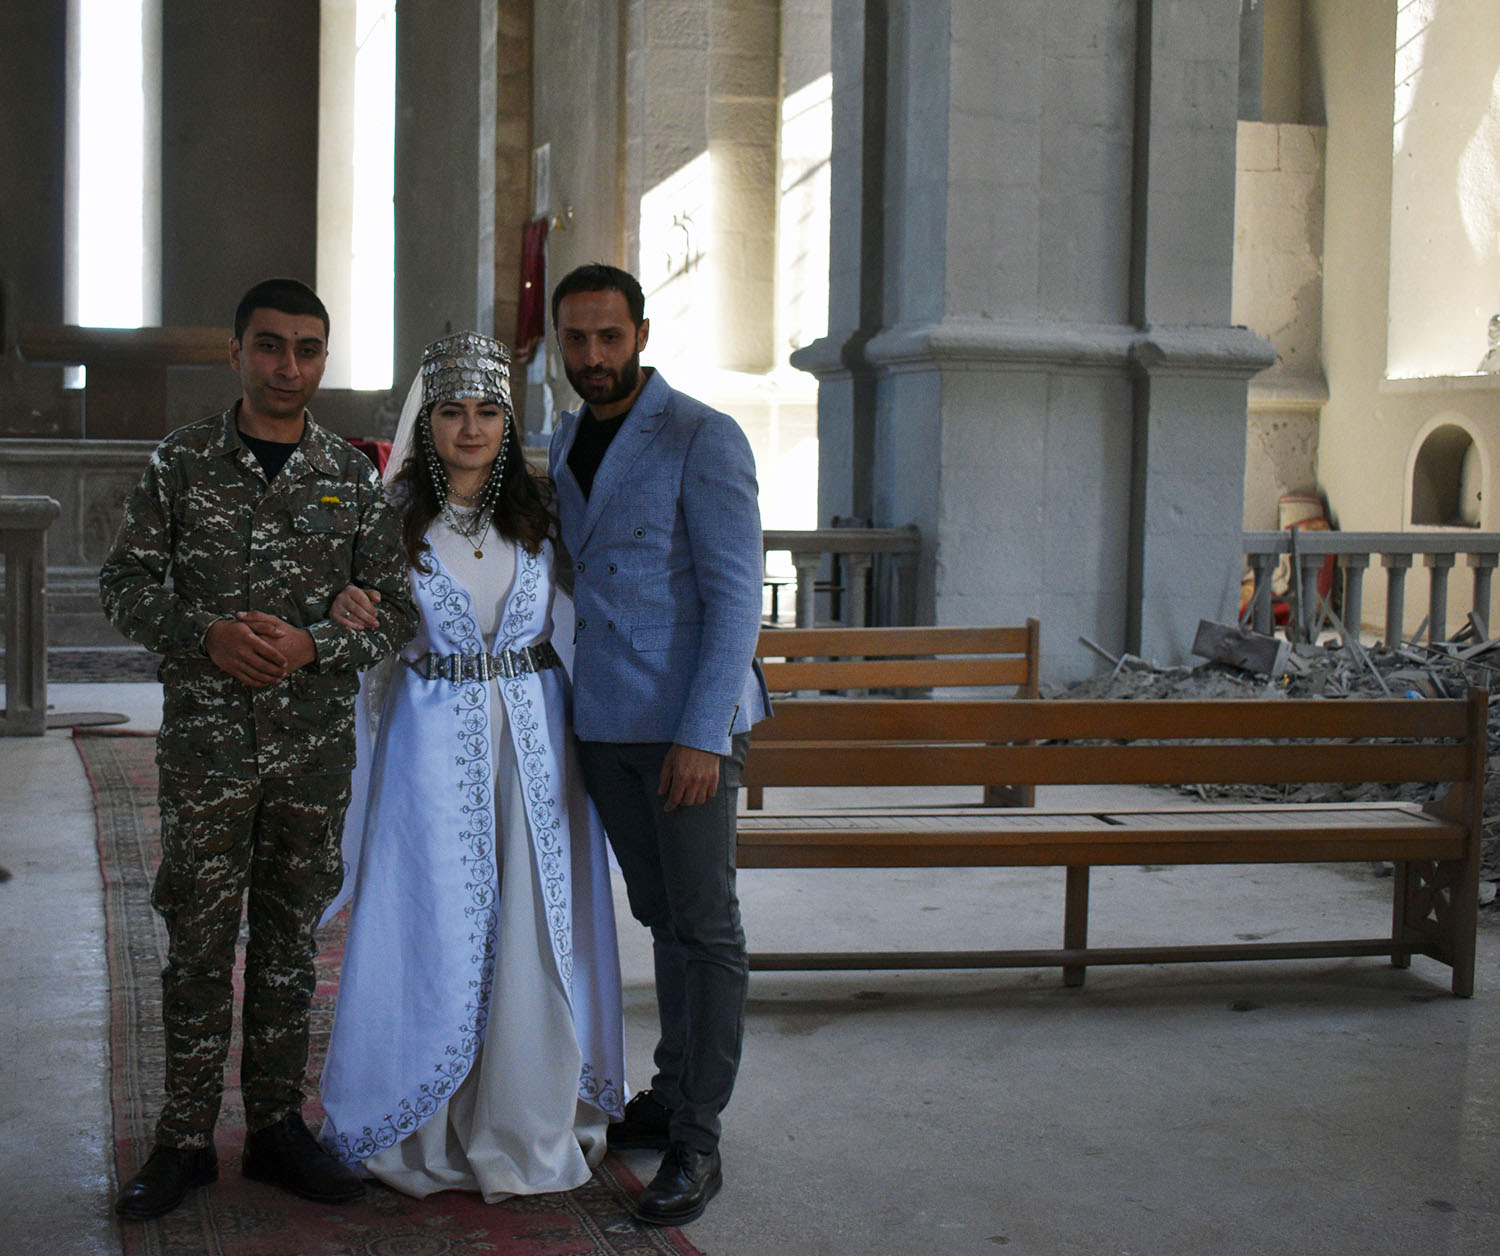 A journalist poses with an Armenian couple who married in an act of defiance at a church in Shushi, Nagorno-Karabakh, on Oct. 23.